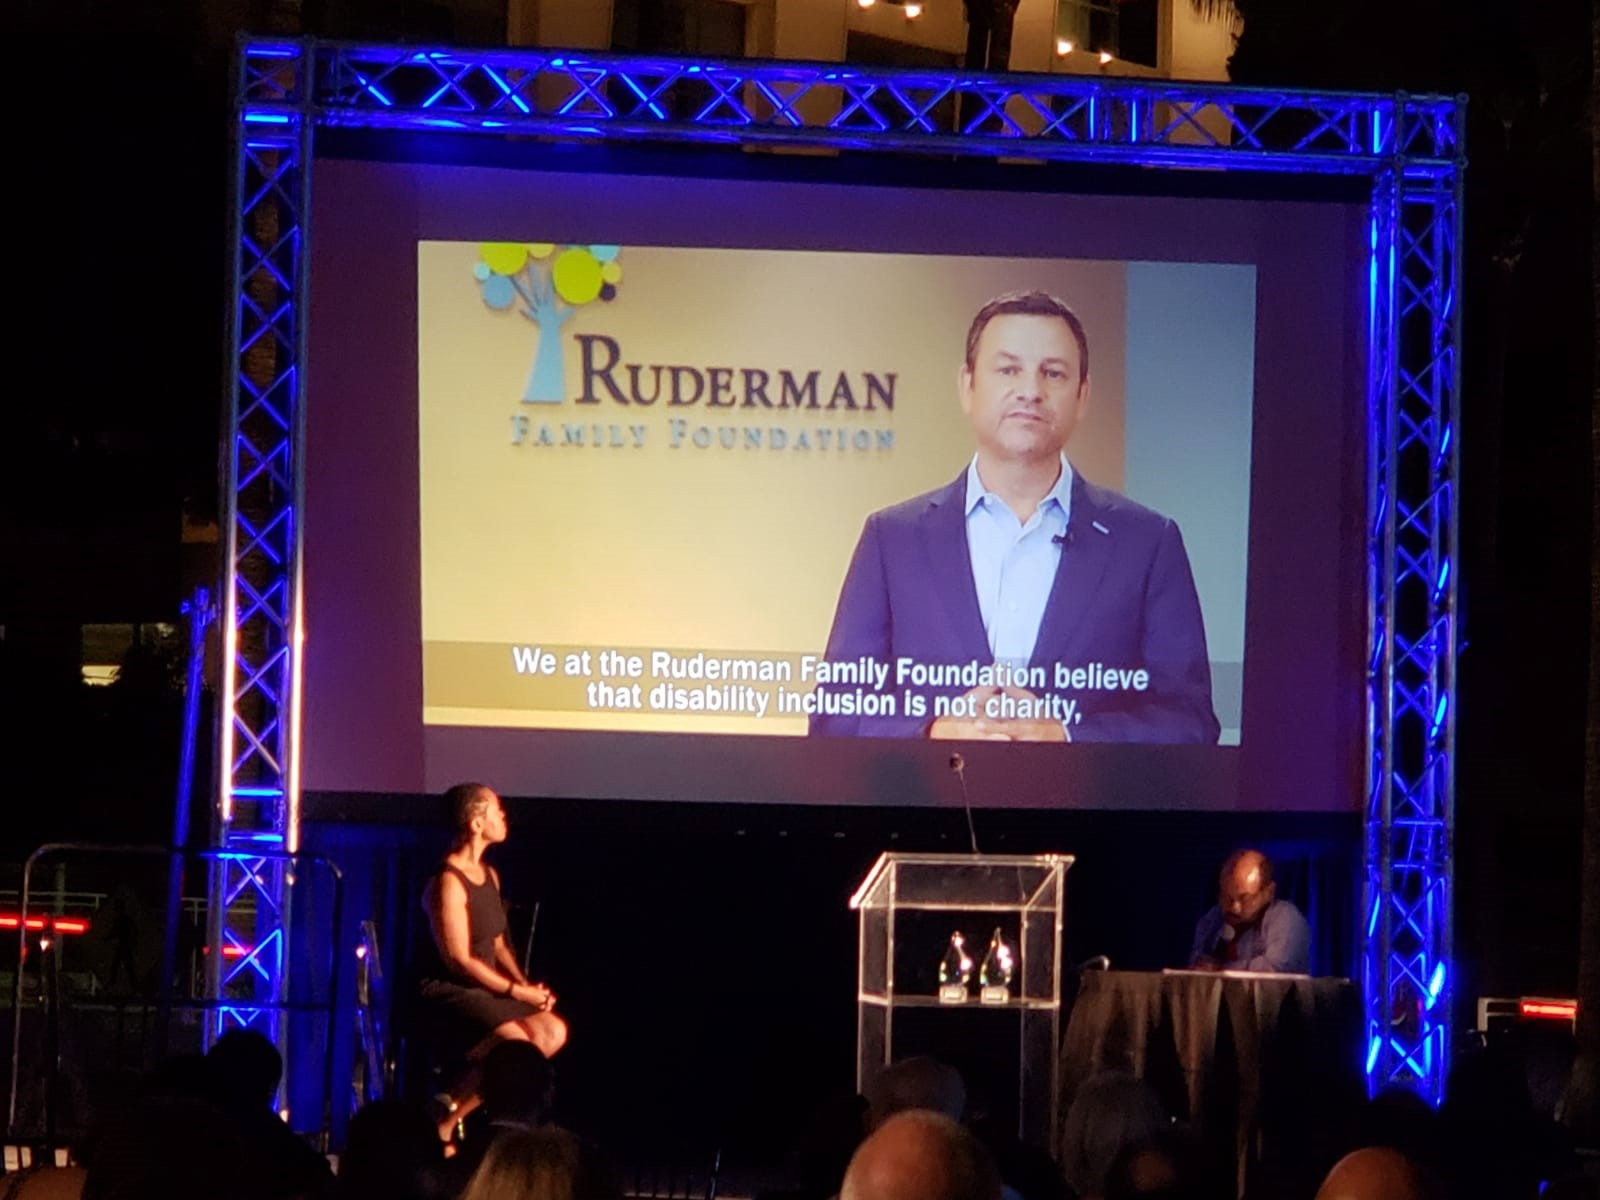 The Chuck Siegal President Award Received by the Ruderman Family Foundation